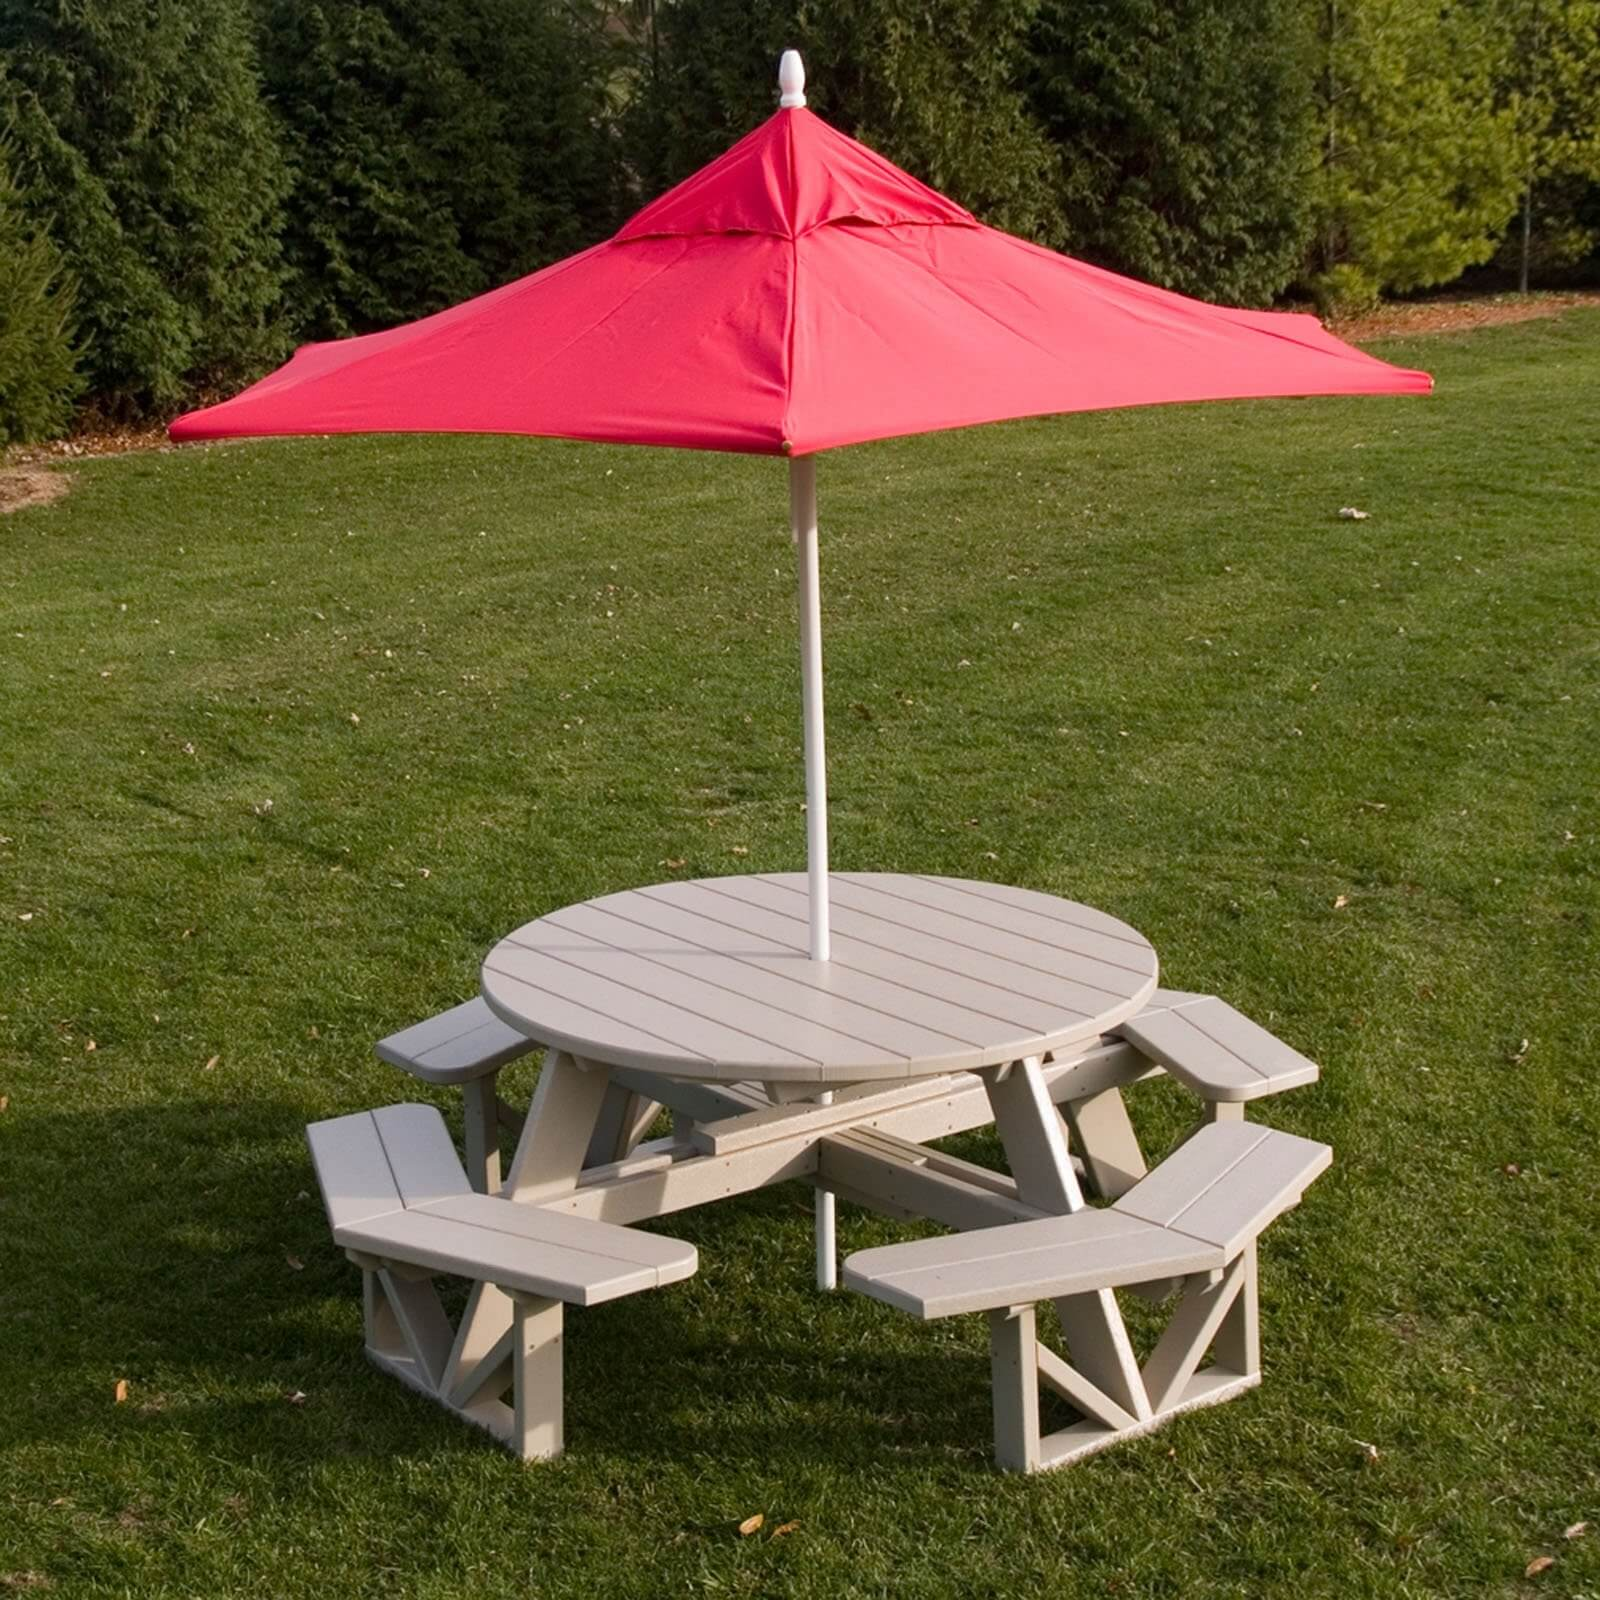 Here is a nice wound plastic picnic table with an umbrella. This higher end picnic table has comfortable seating for up to eight people and plenty of table room for each. One benefit to this design is that everyone at the table can engage directly with one another.